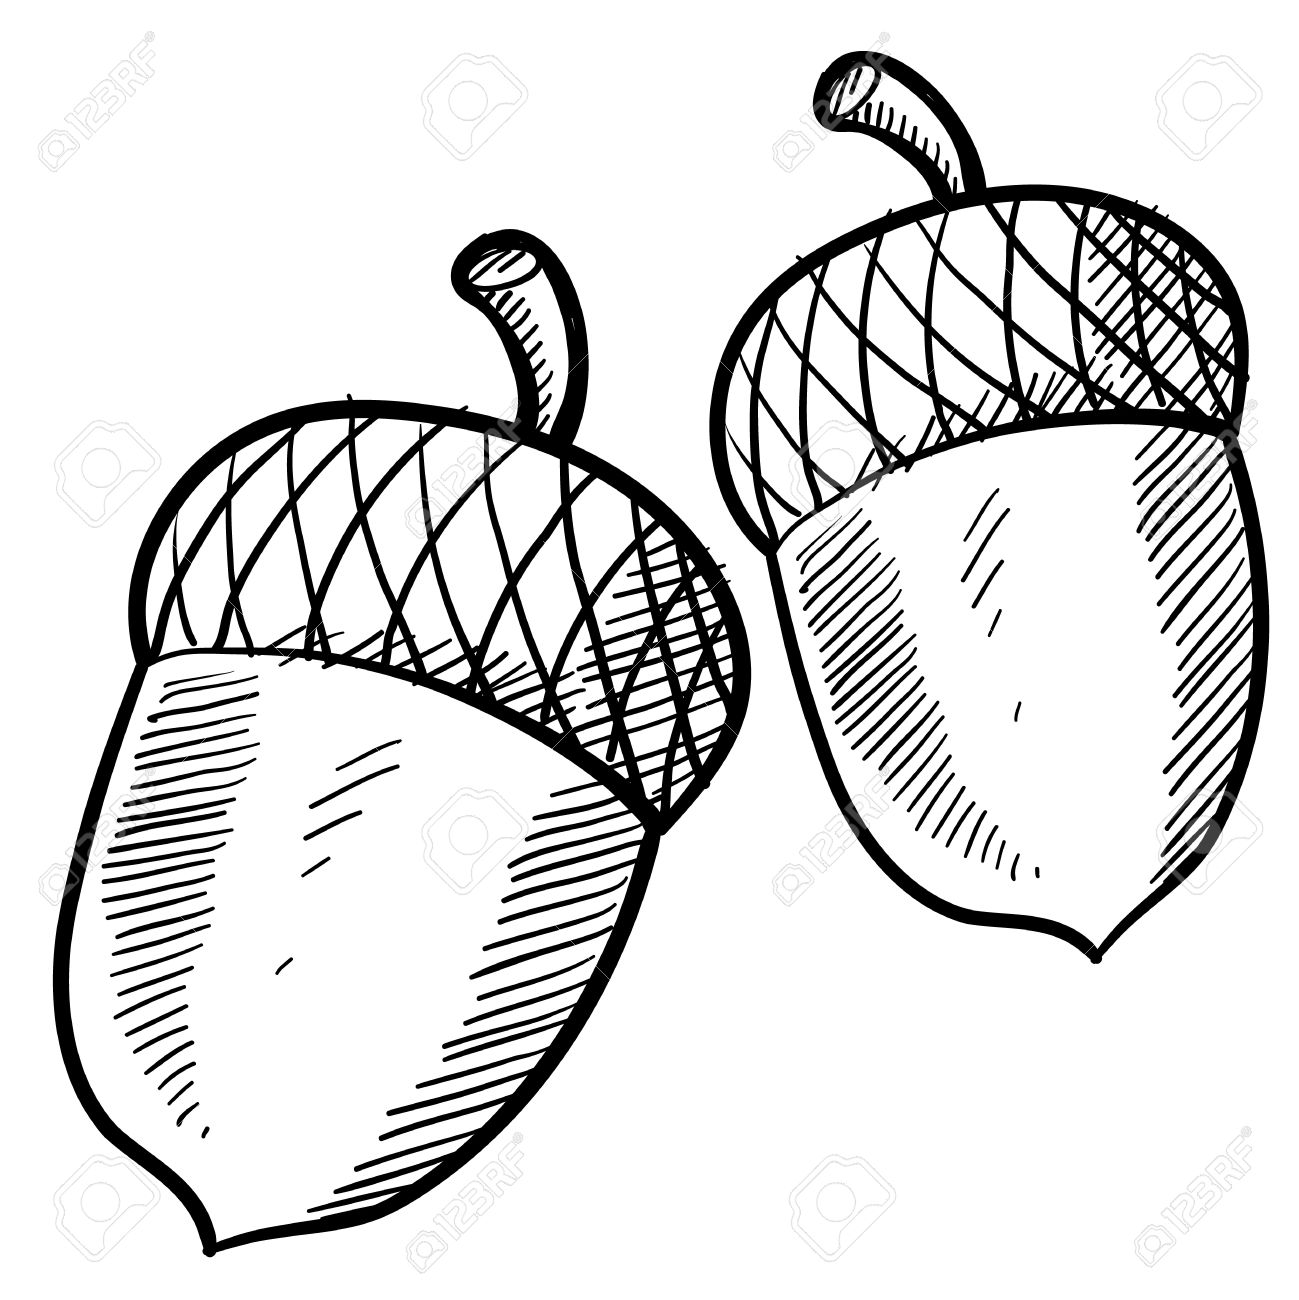 Doodle style acorn or buckeye illustration suitable for web, print, or advertising use. Stock Illustration - 11790107